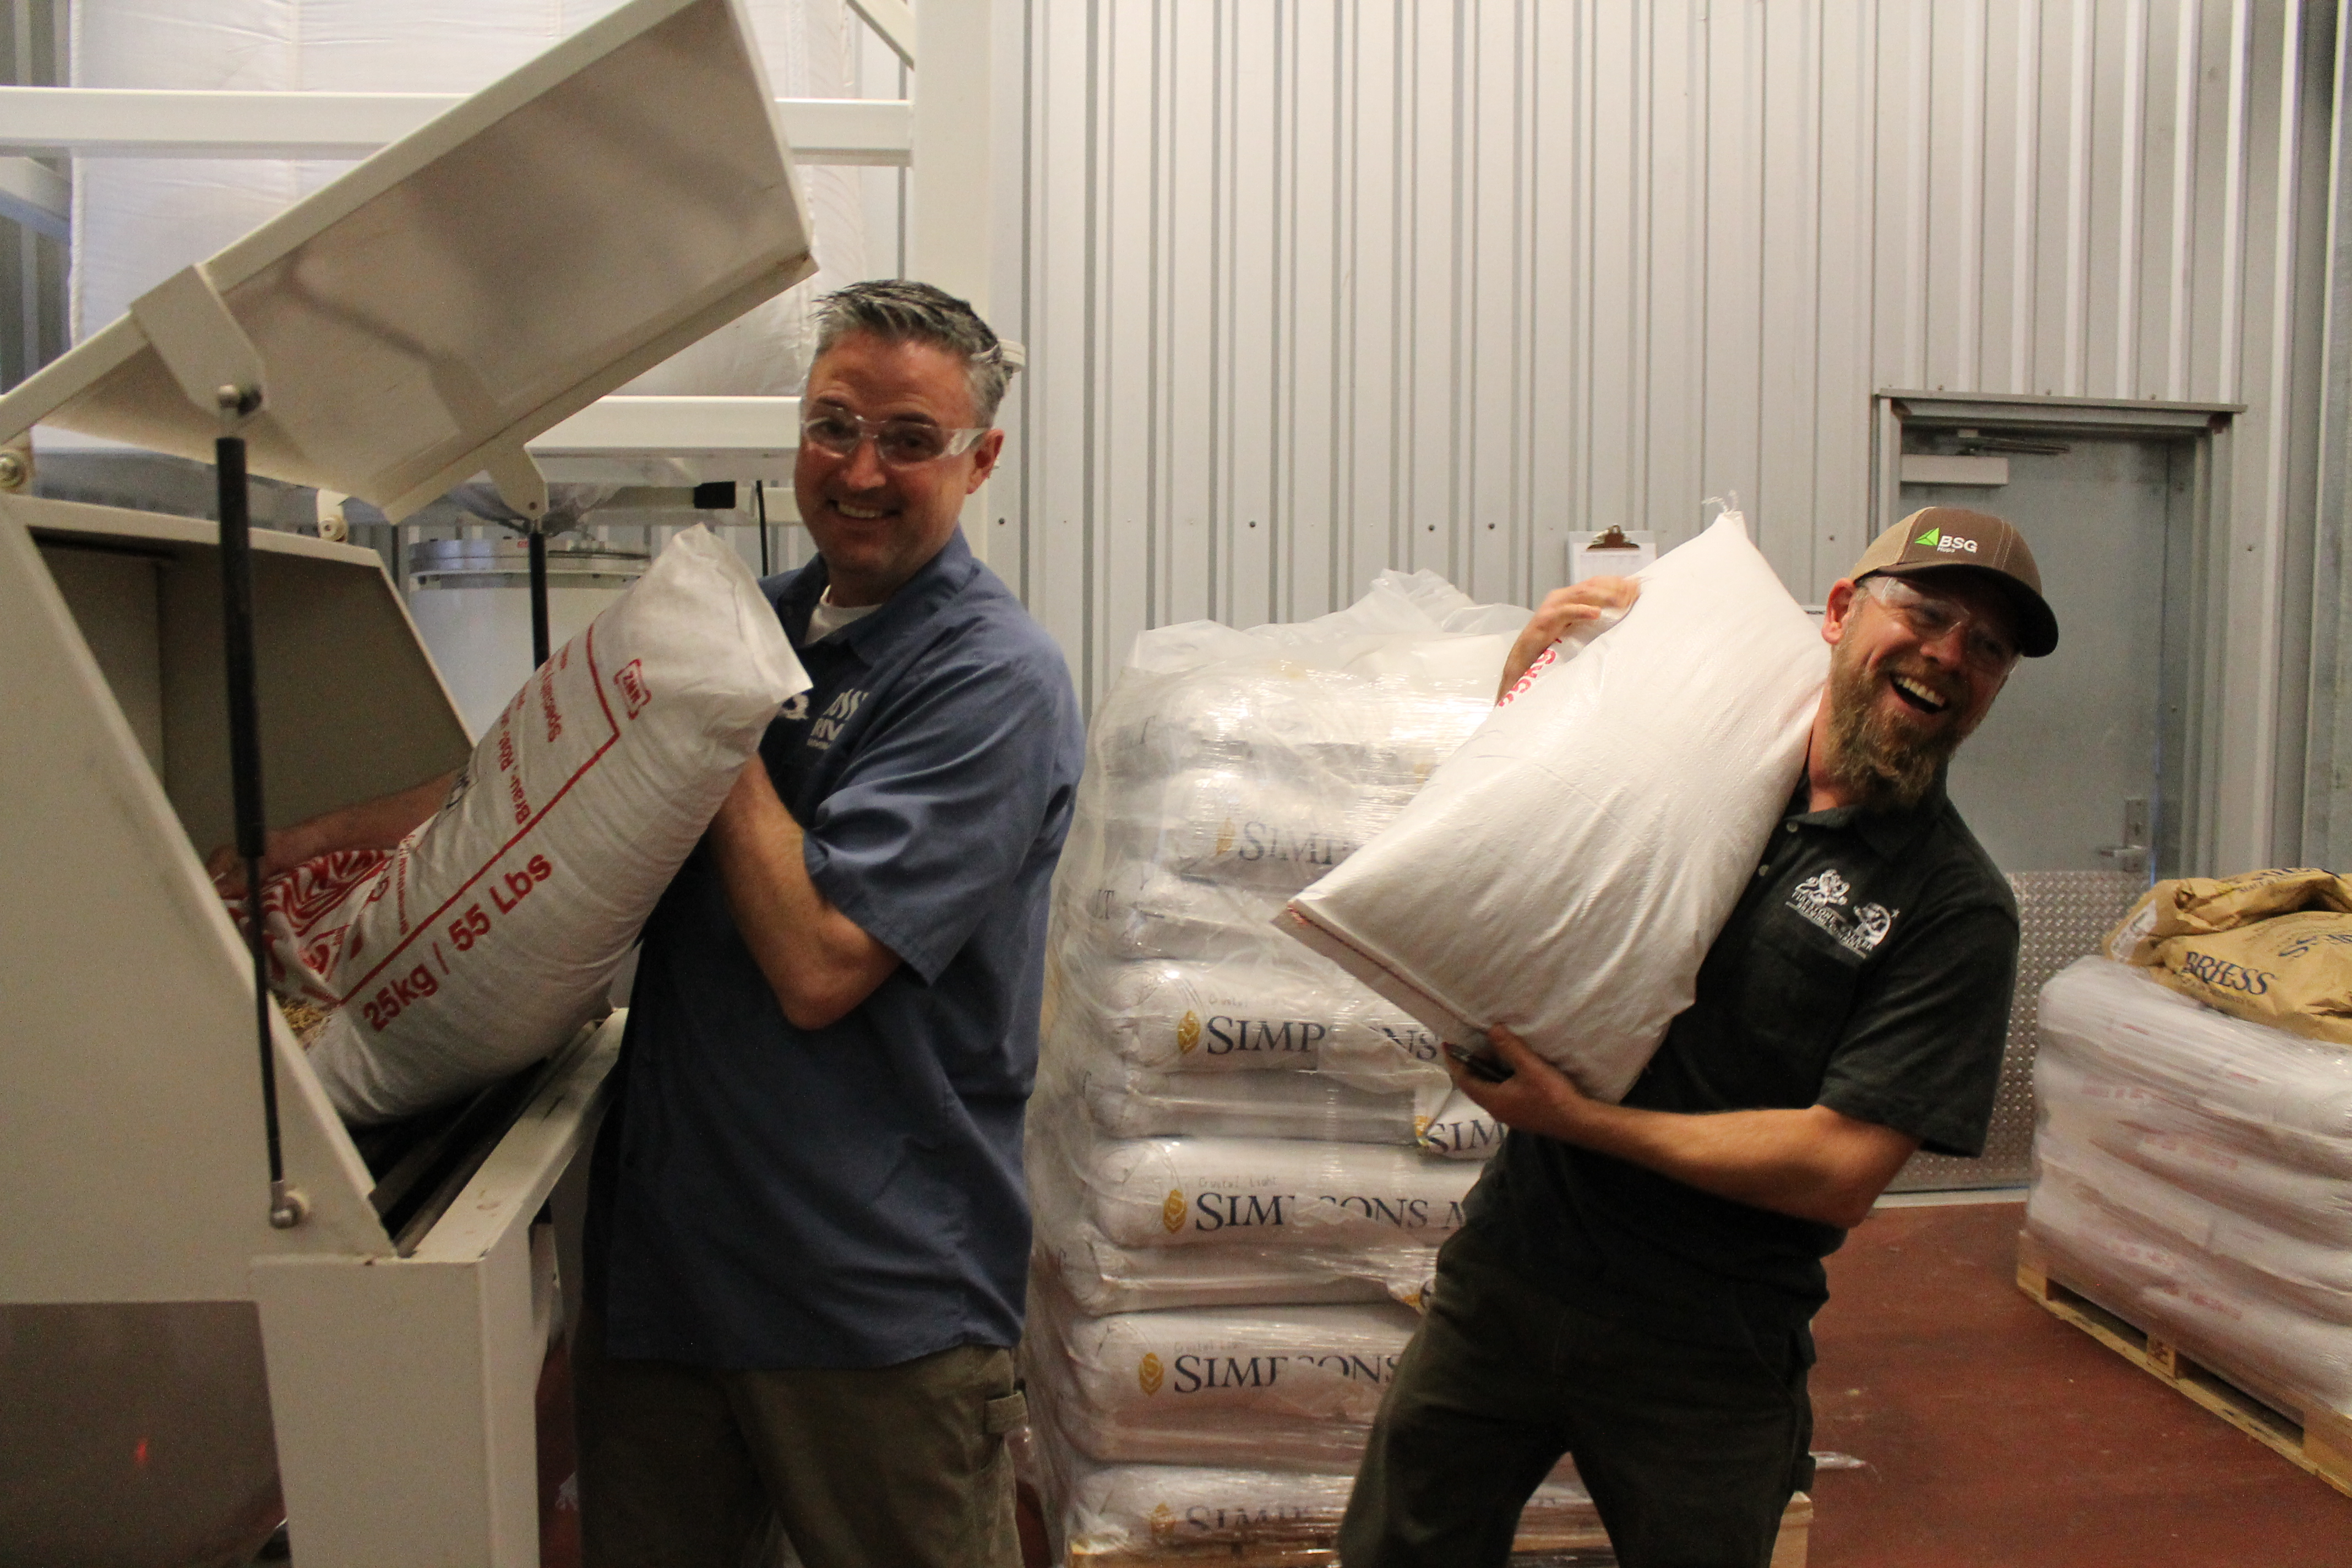 Vinnie and Matt hauling bags of malt. (image courtesy of Firestone Walker Brewing)